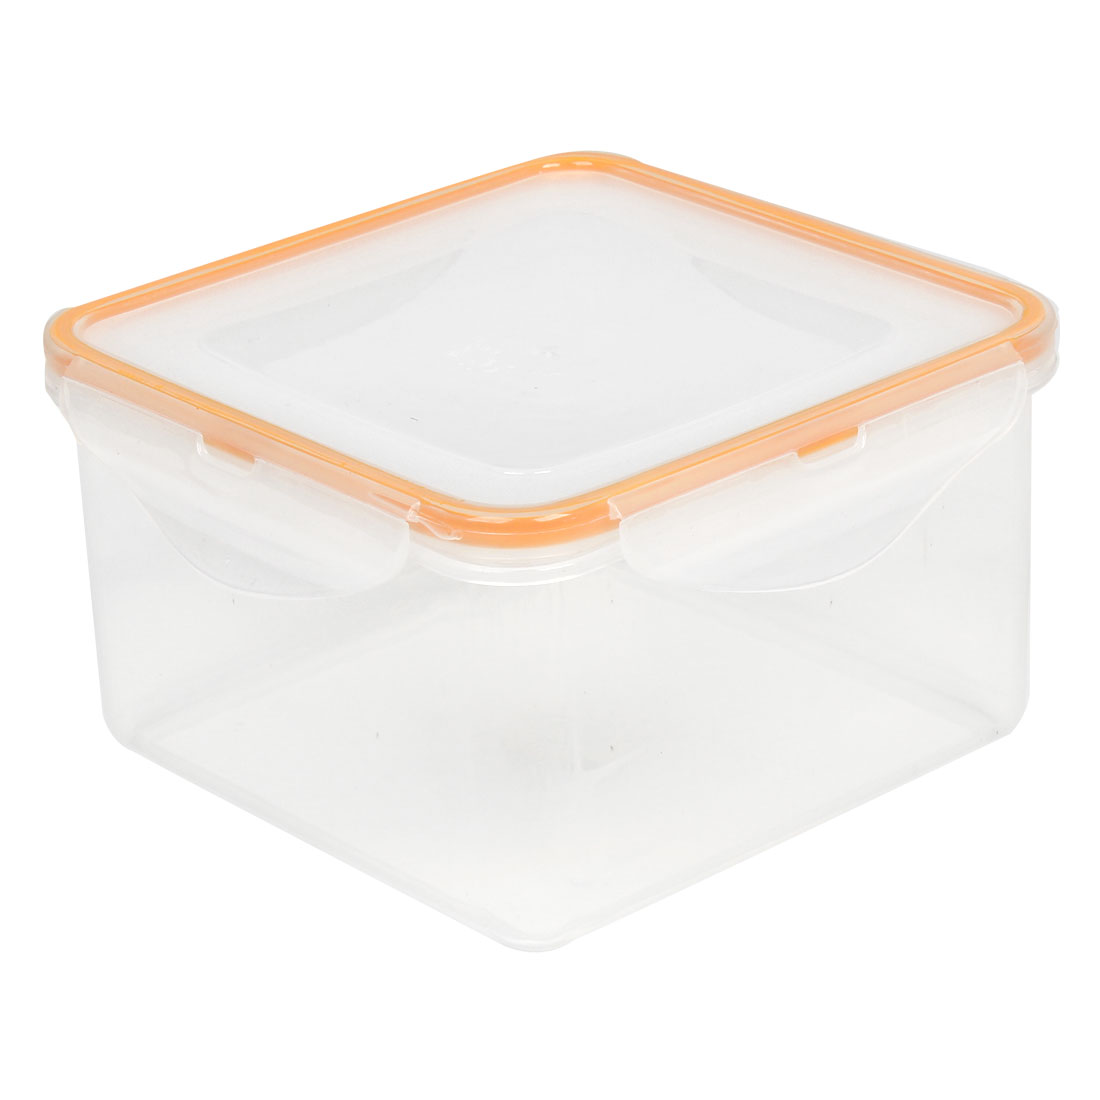 Travel Picnic White Light Orange Plastic Meal Lunch Food Holder Box